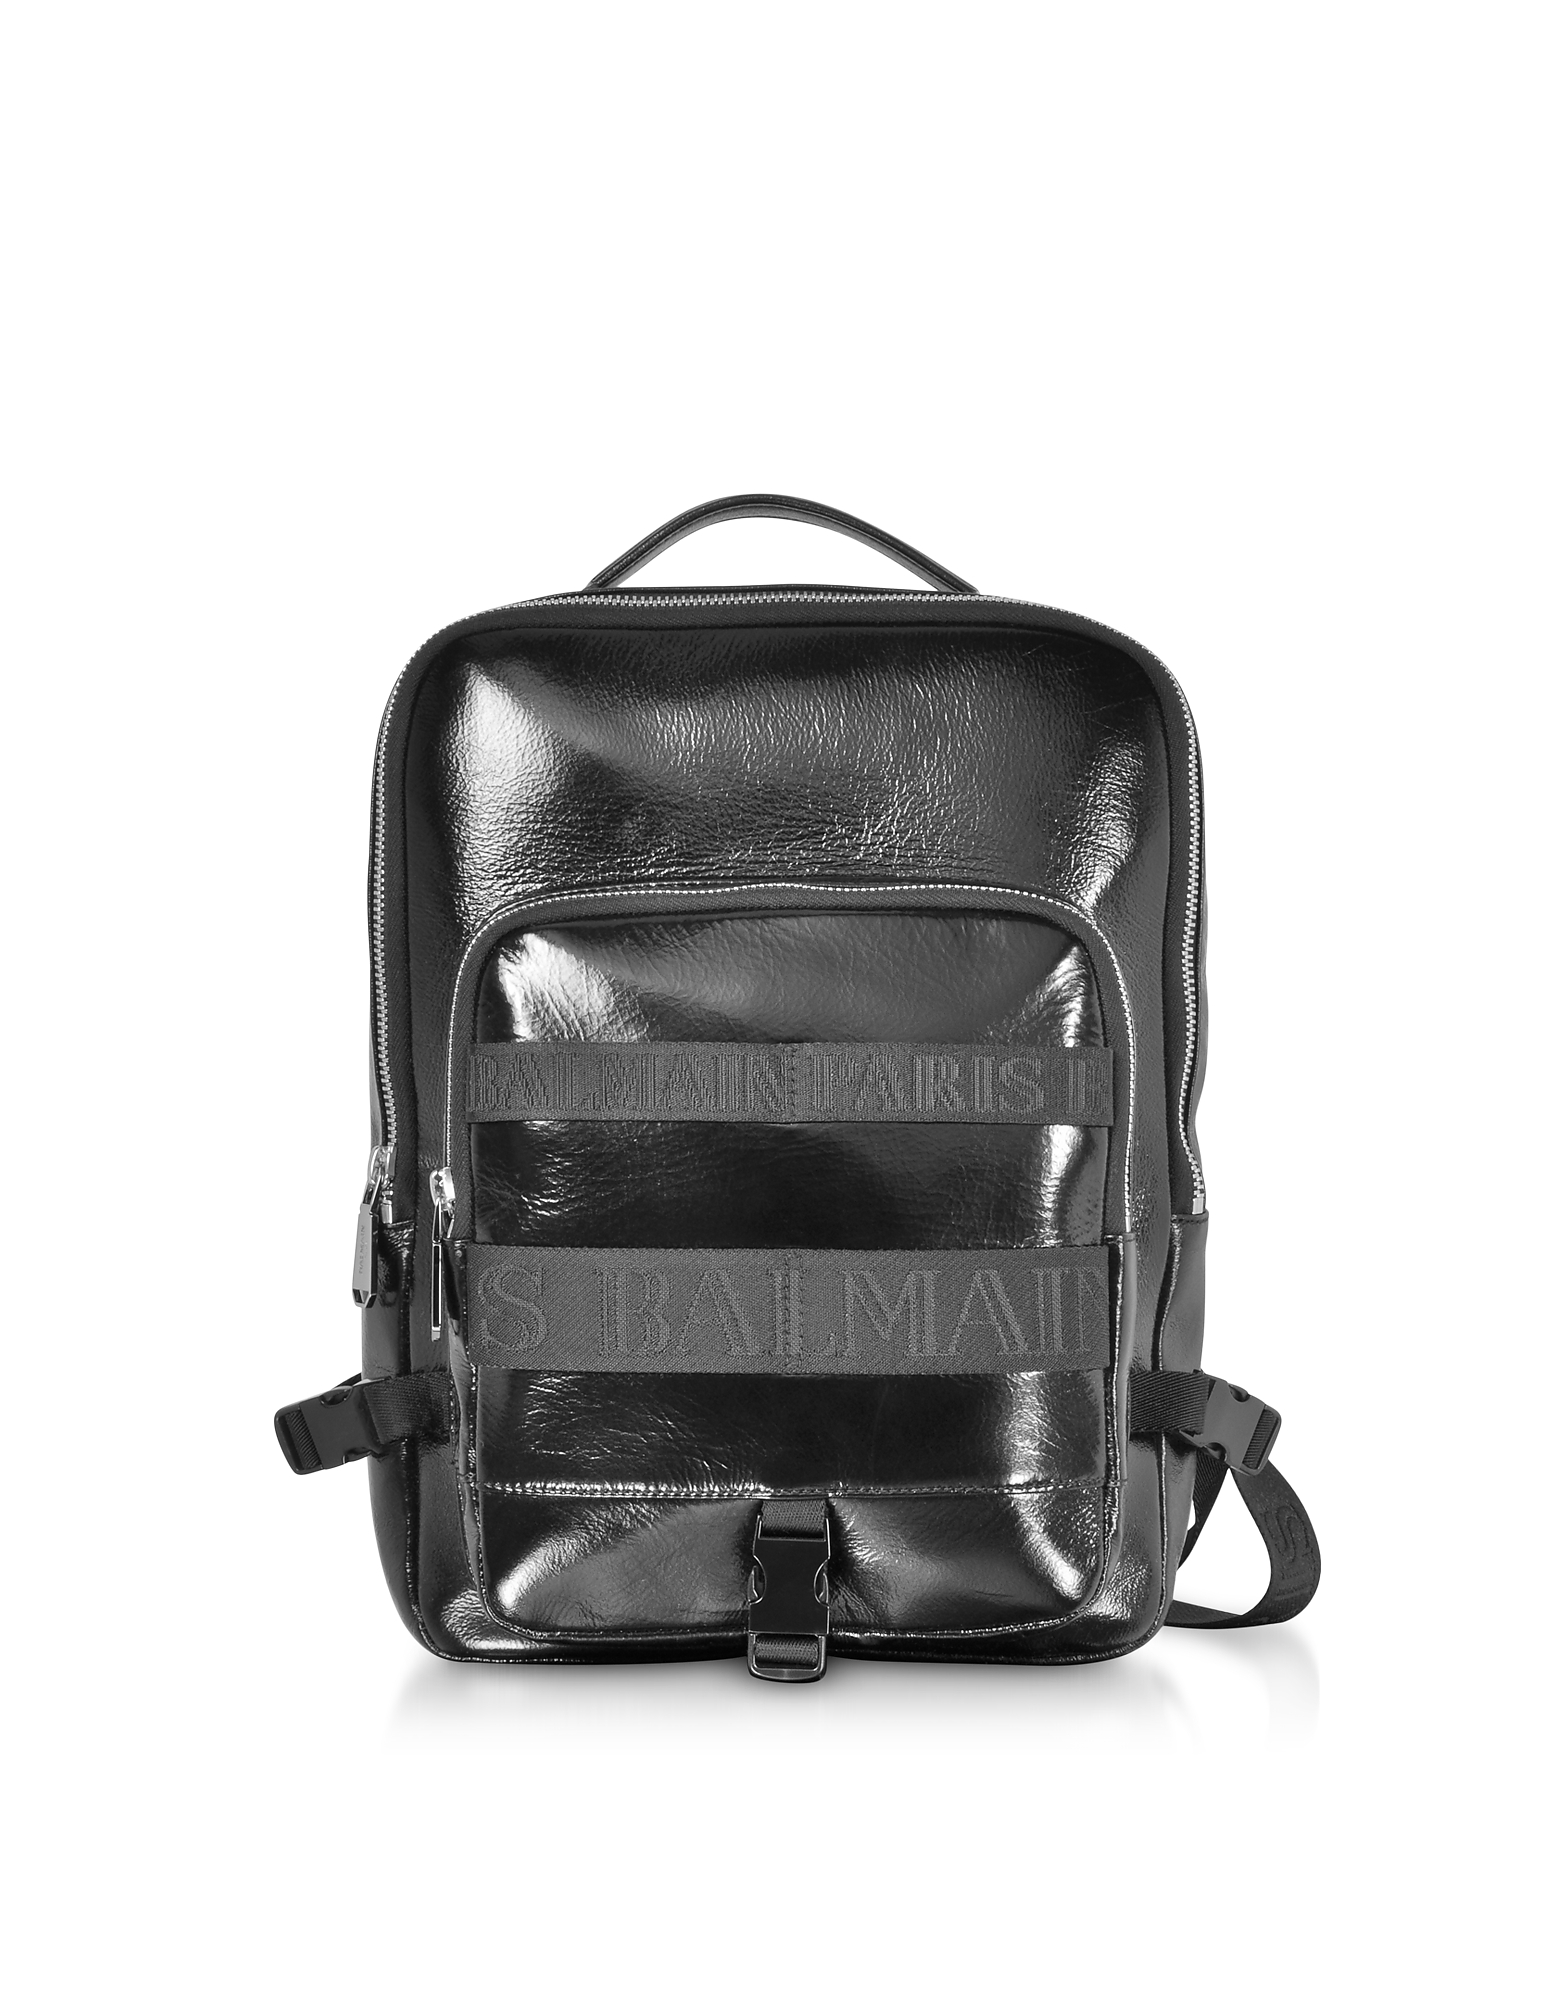 Image of Balmain Designer Backpacks, Black Leather Men's Crossbody/Backpack